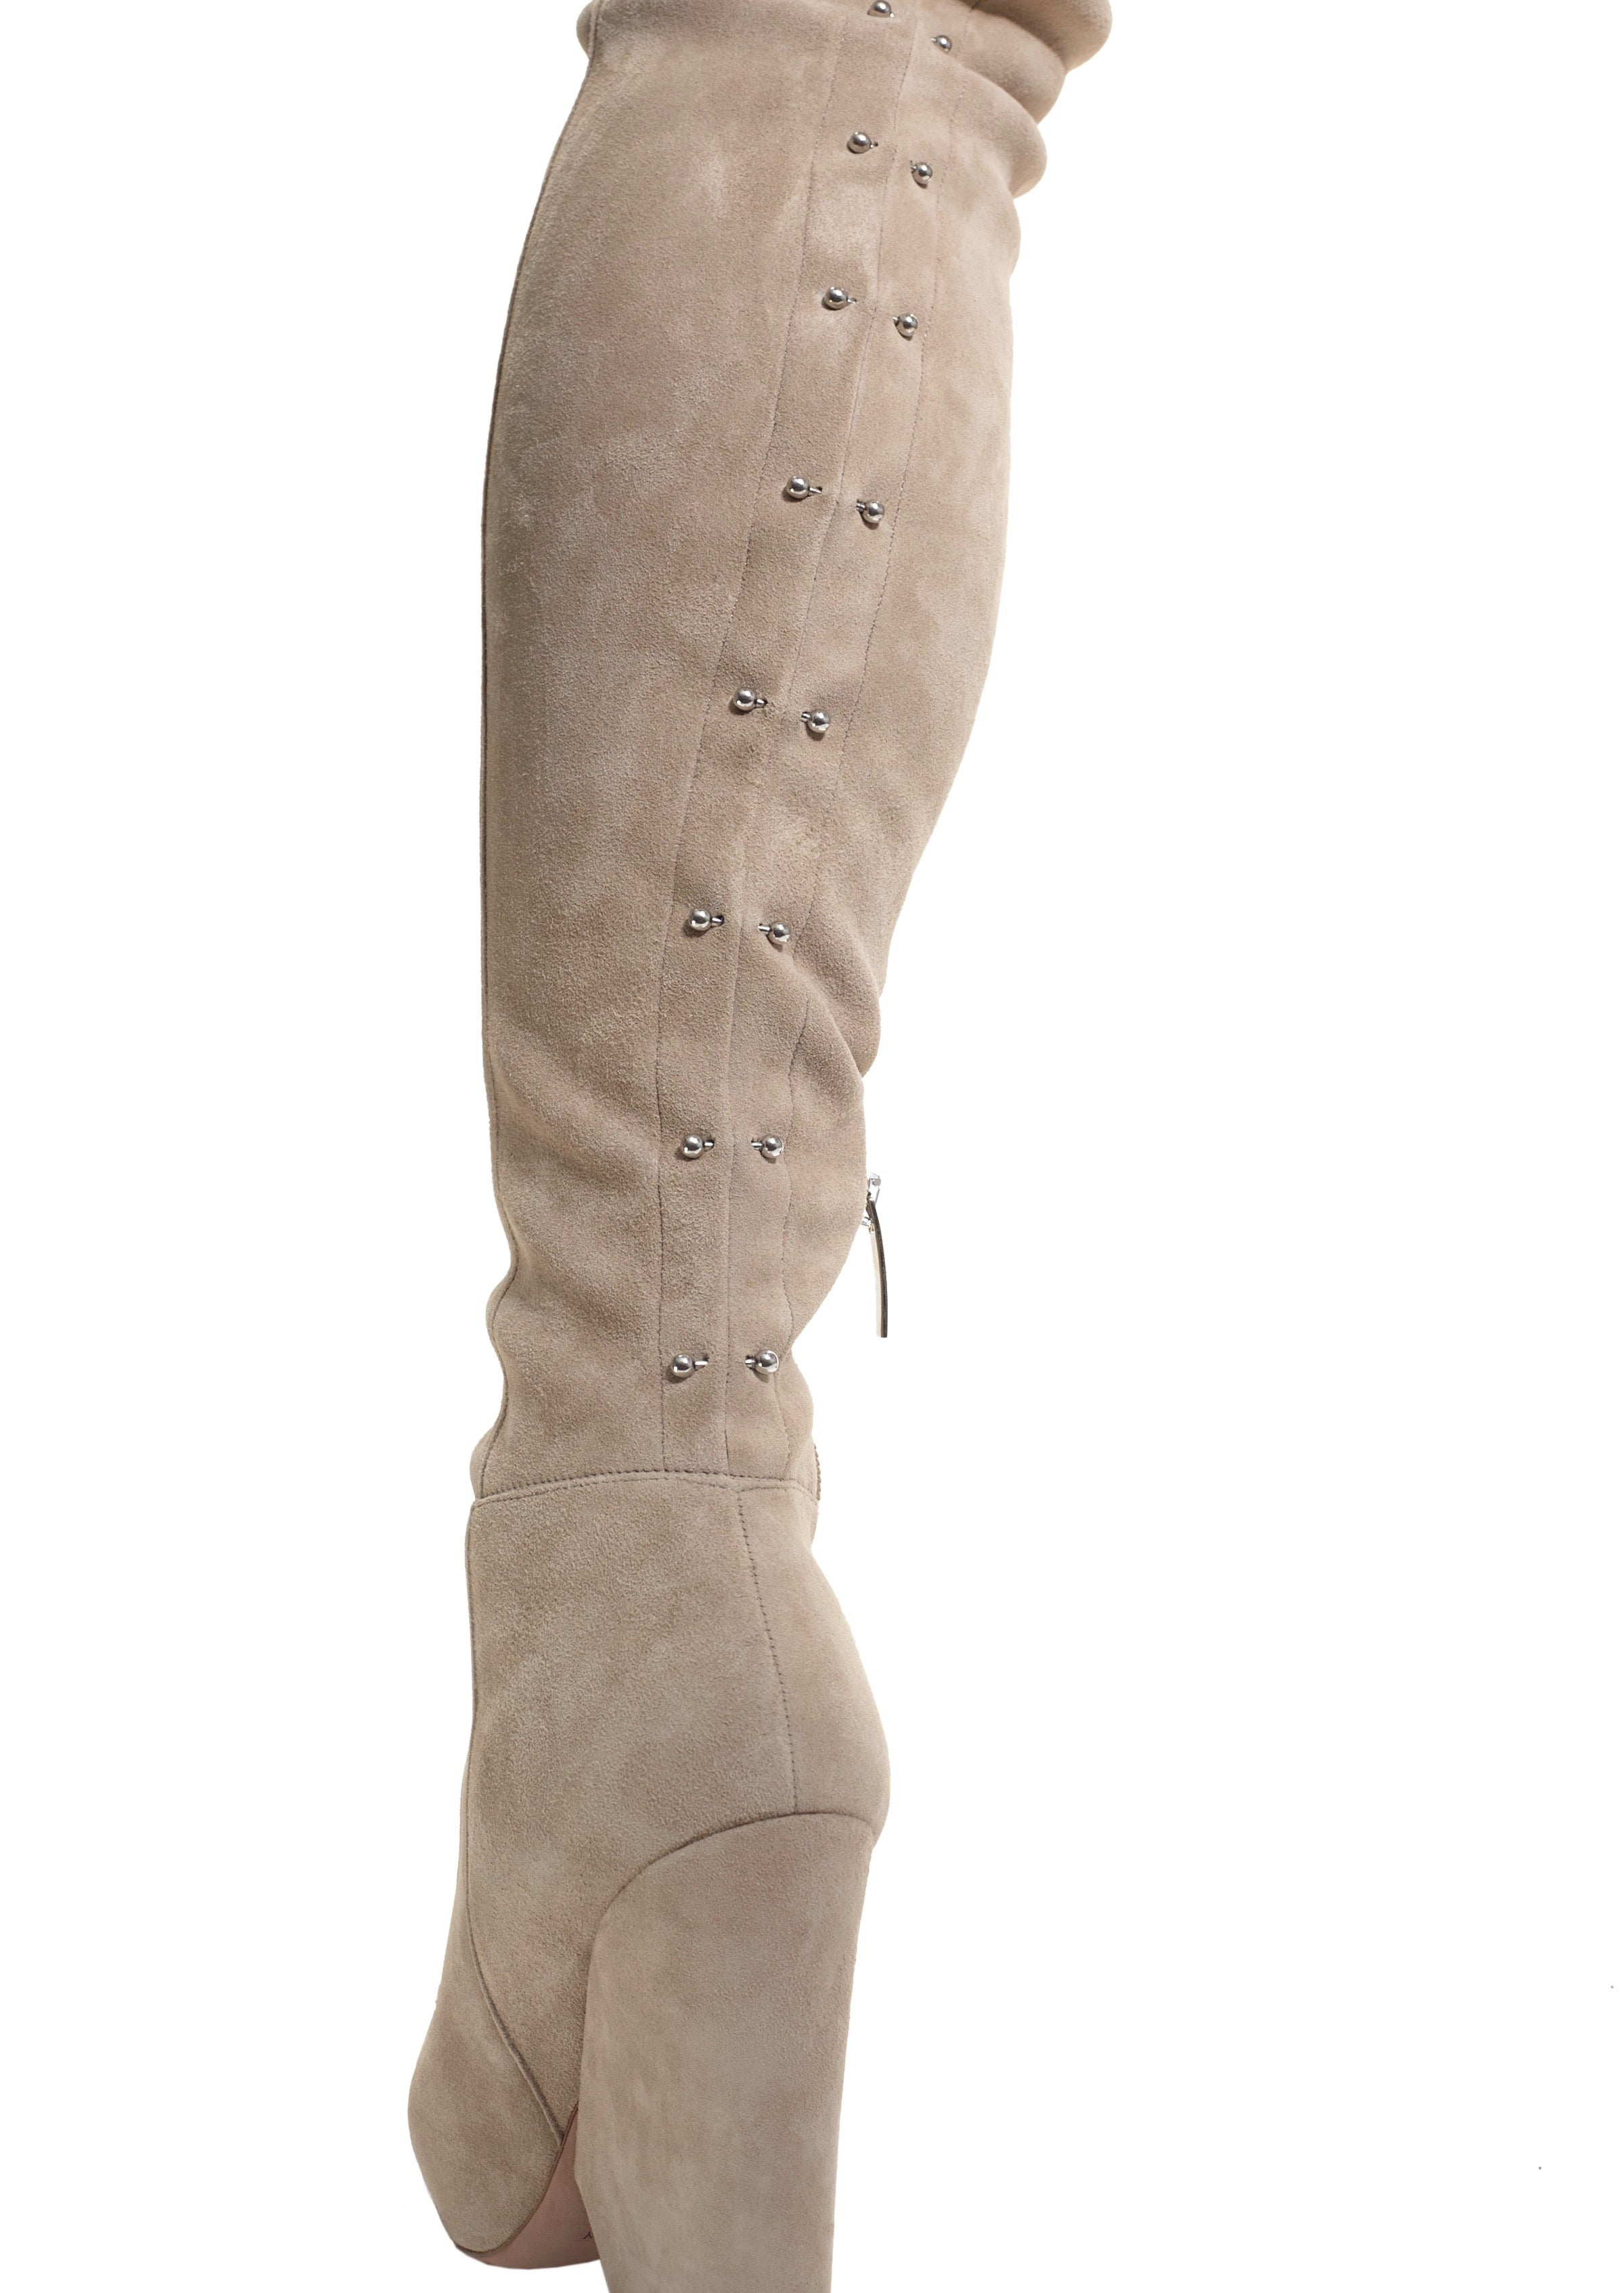 VIX CREAM STRETCH SUEDE THIGH BOOT - Monika Chiang